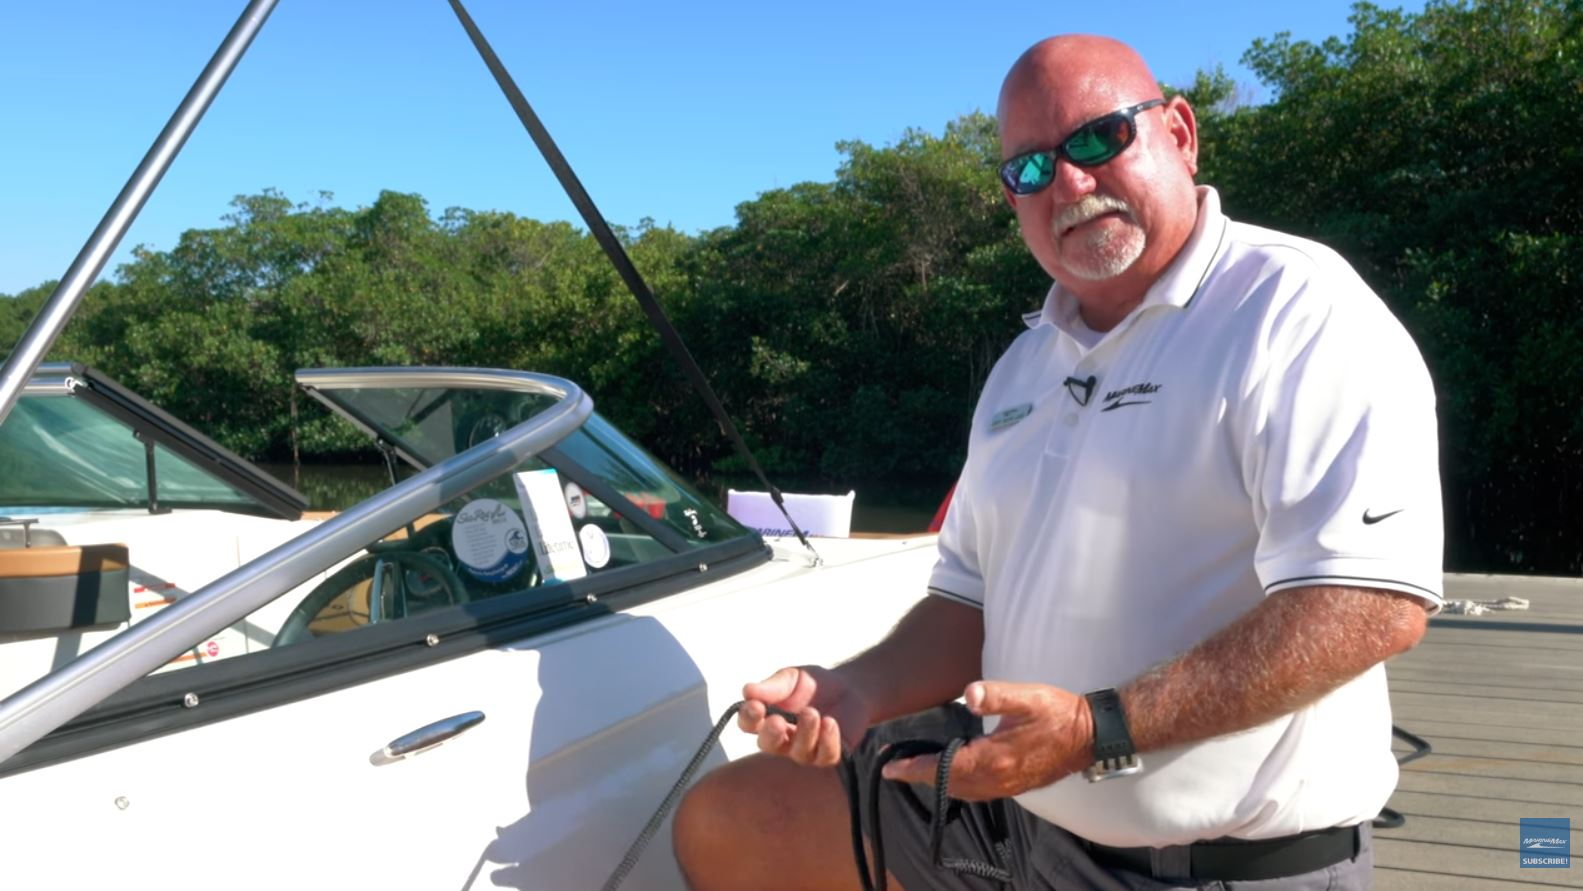 Boating Tips Video for Tying Dock Lines